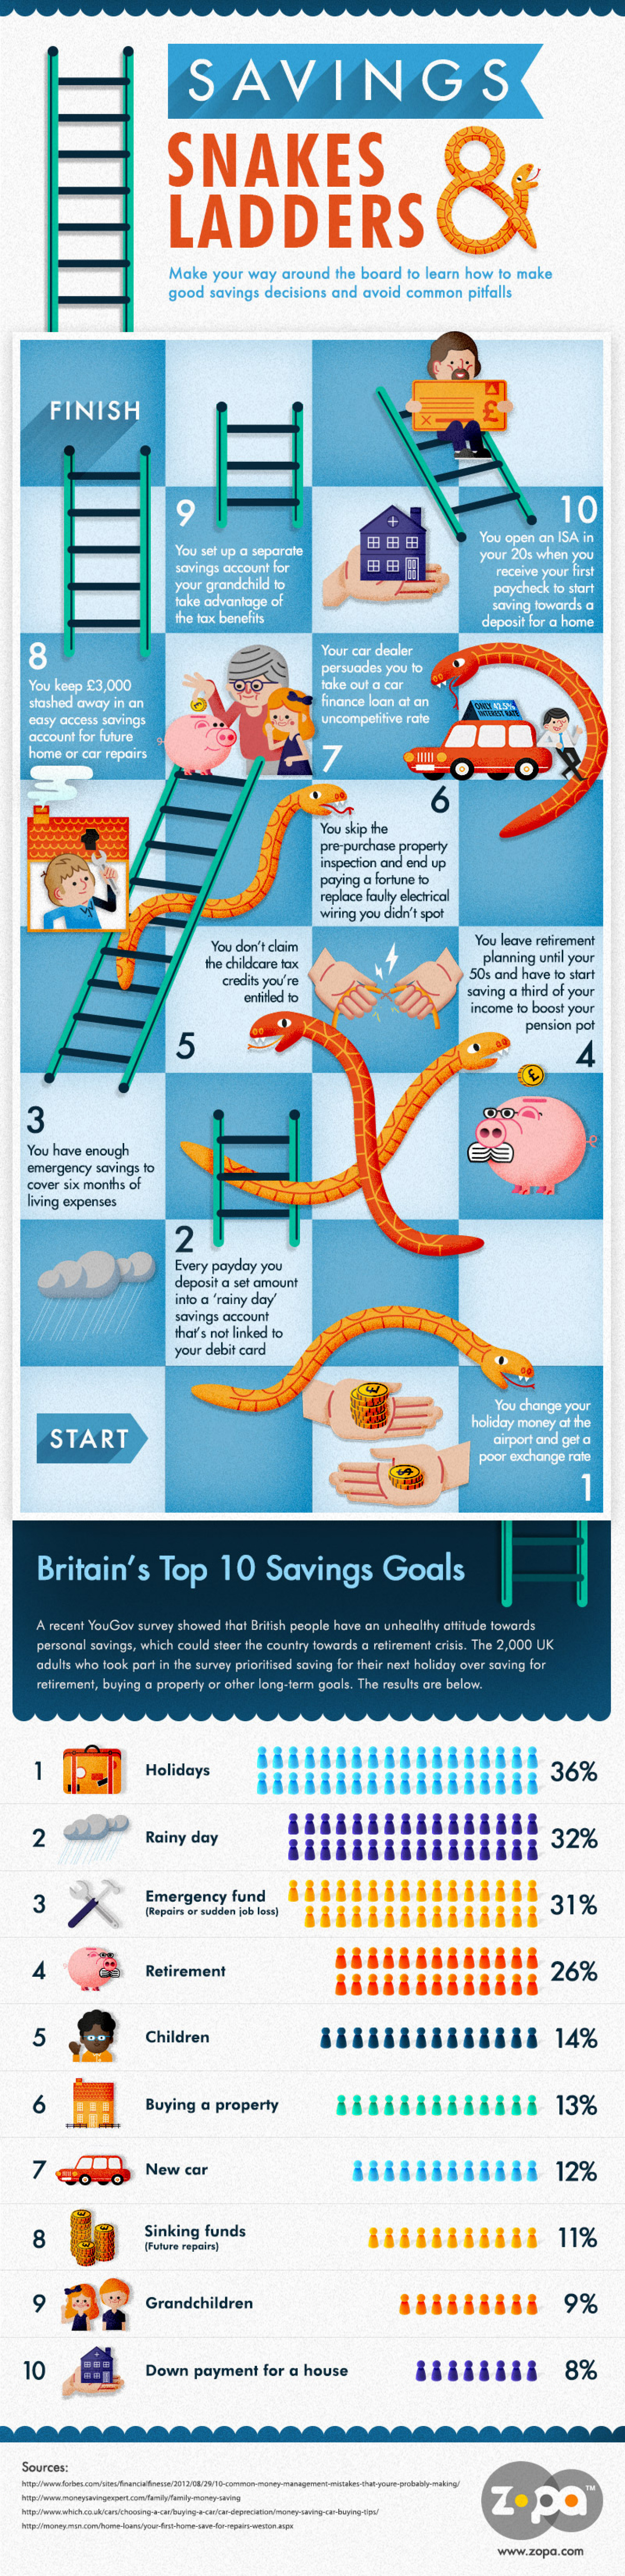 Snakes & Ladders Personal Finance Infographic